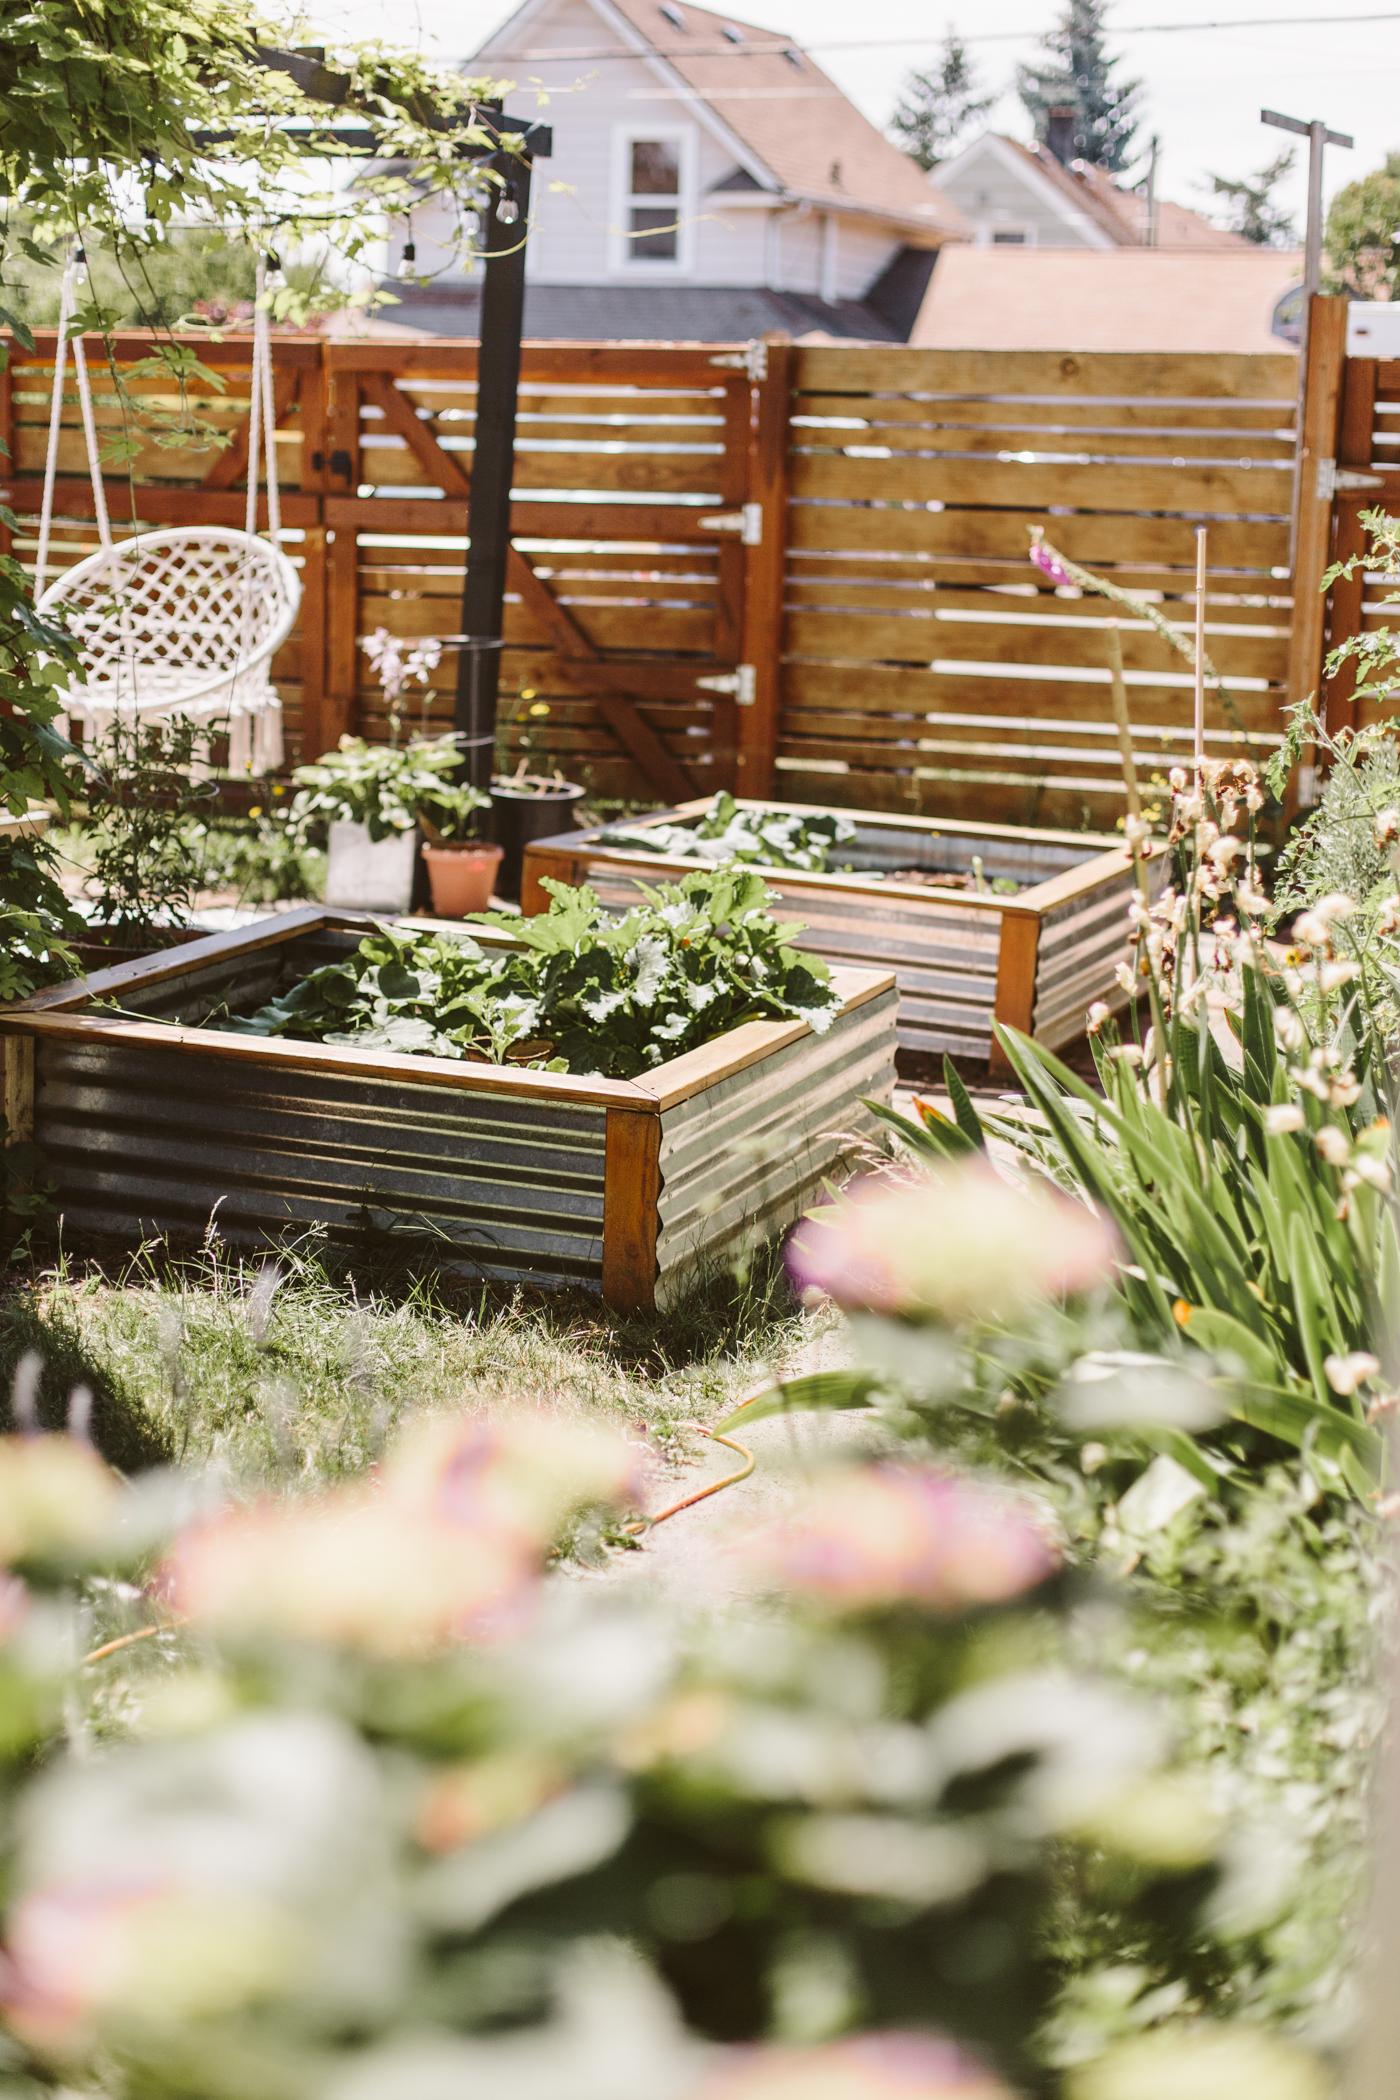 Diy Corrugated Metal Raised Beds Liz Morrow